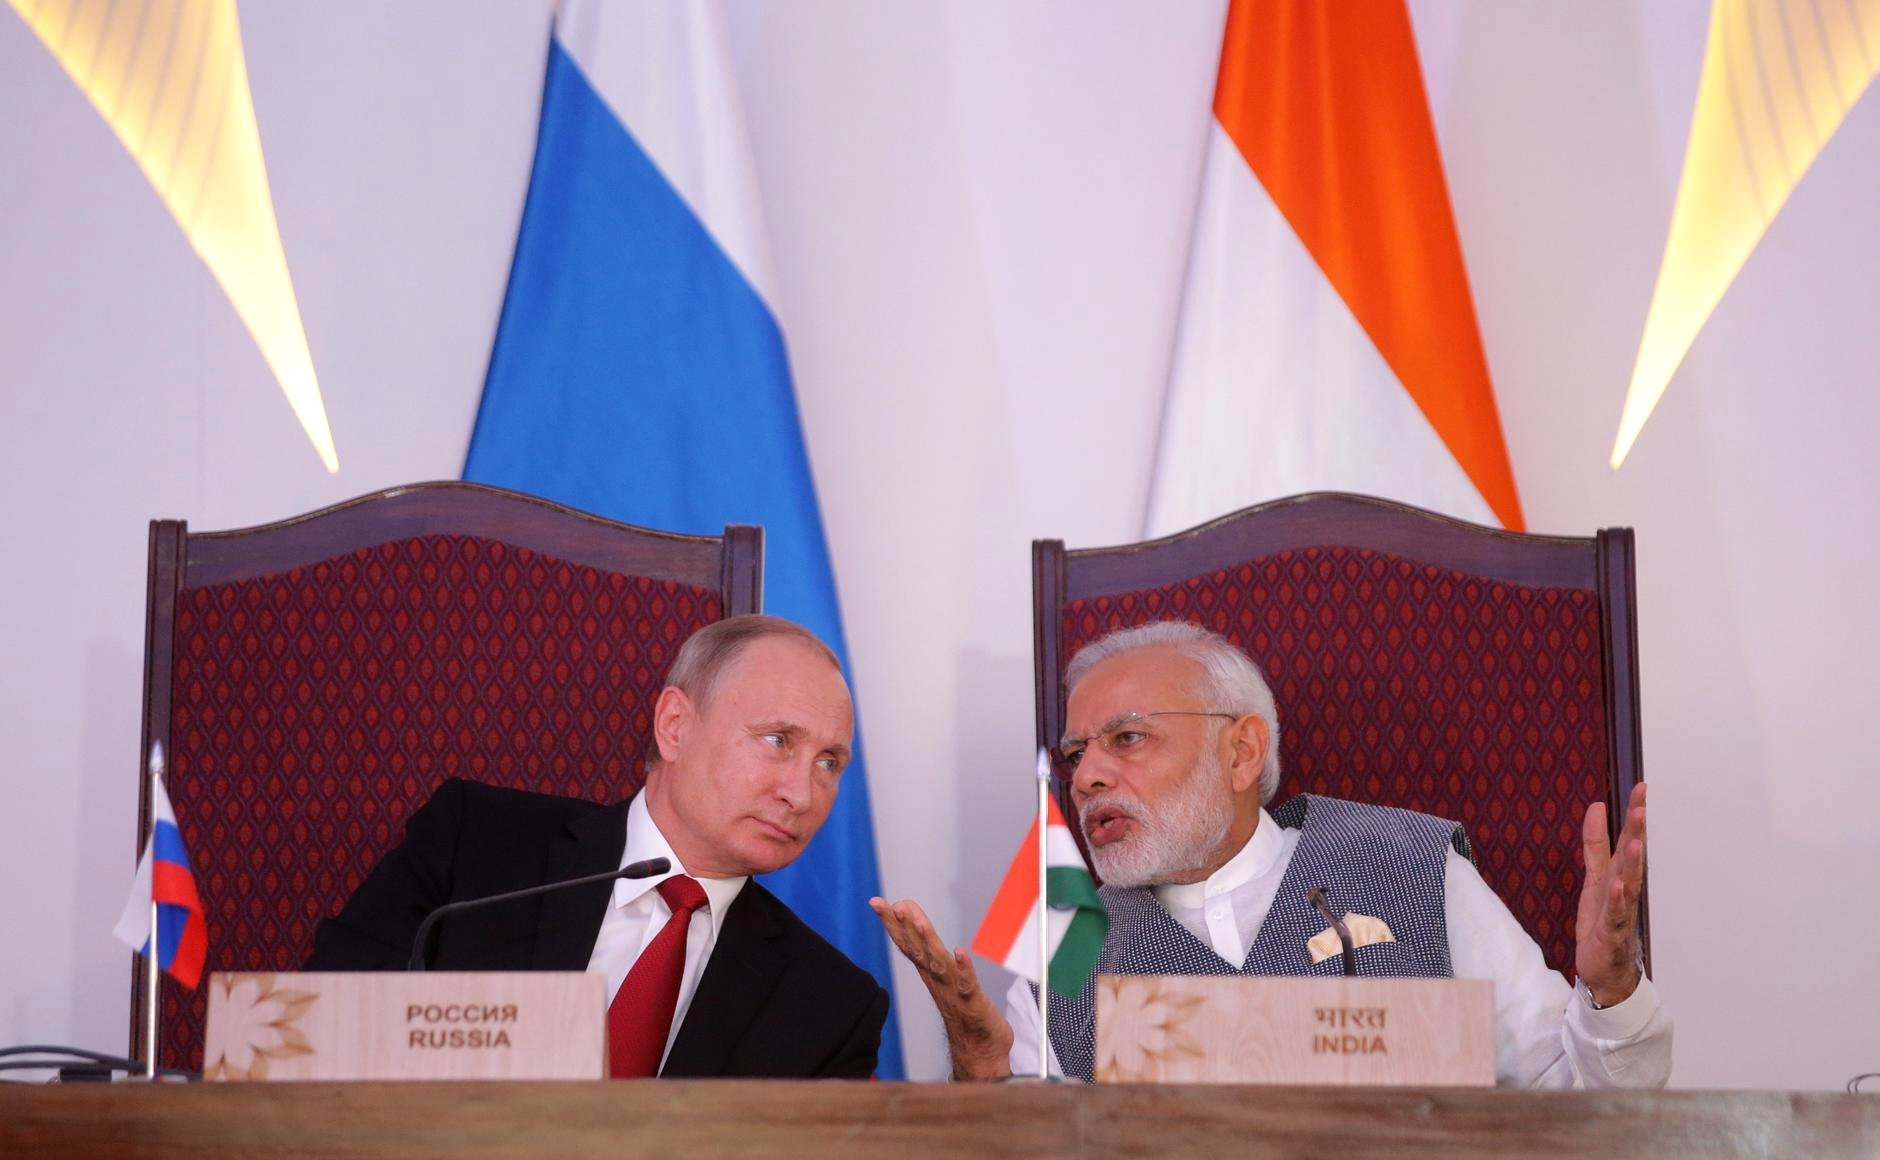 Russia continues to remain a trustworthy strategic partner for India.